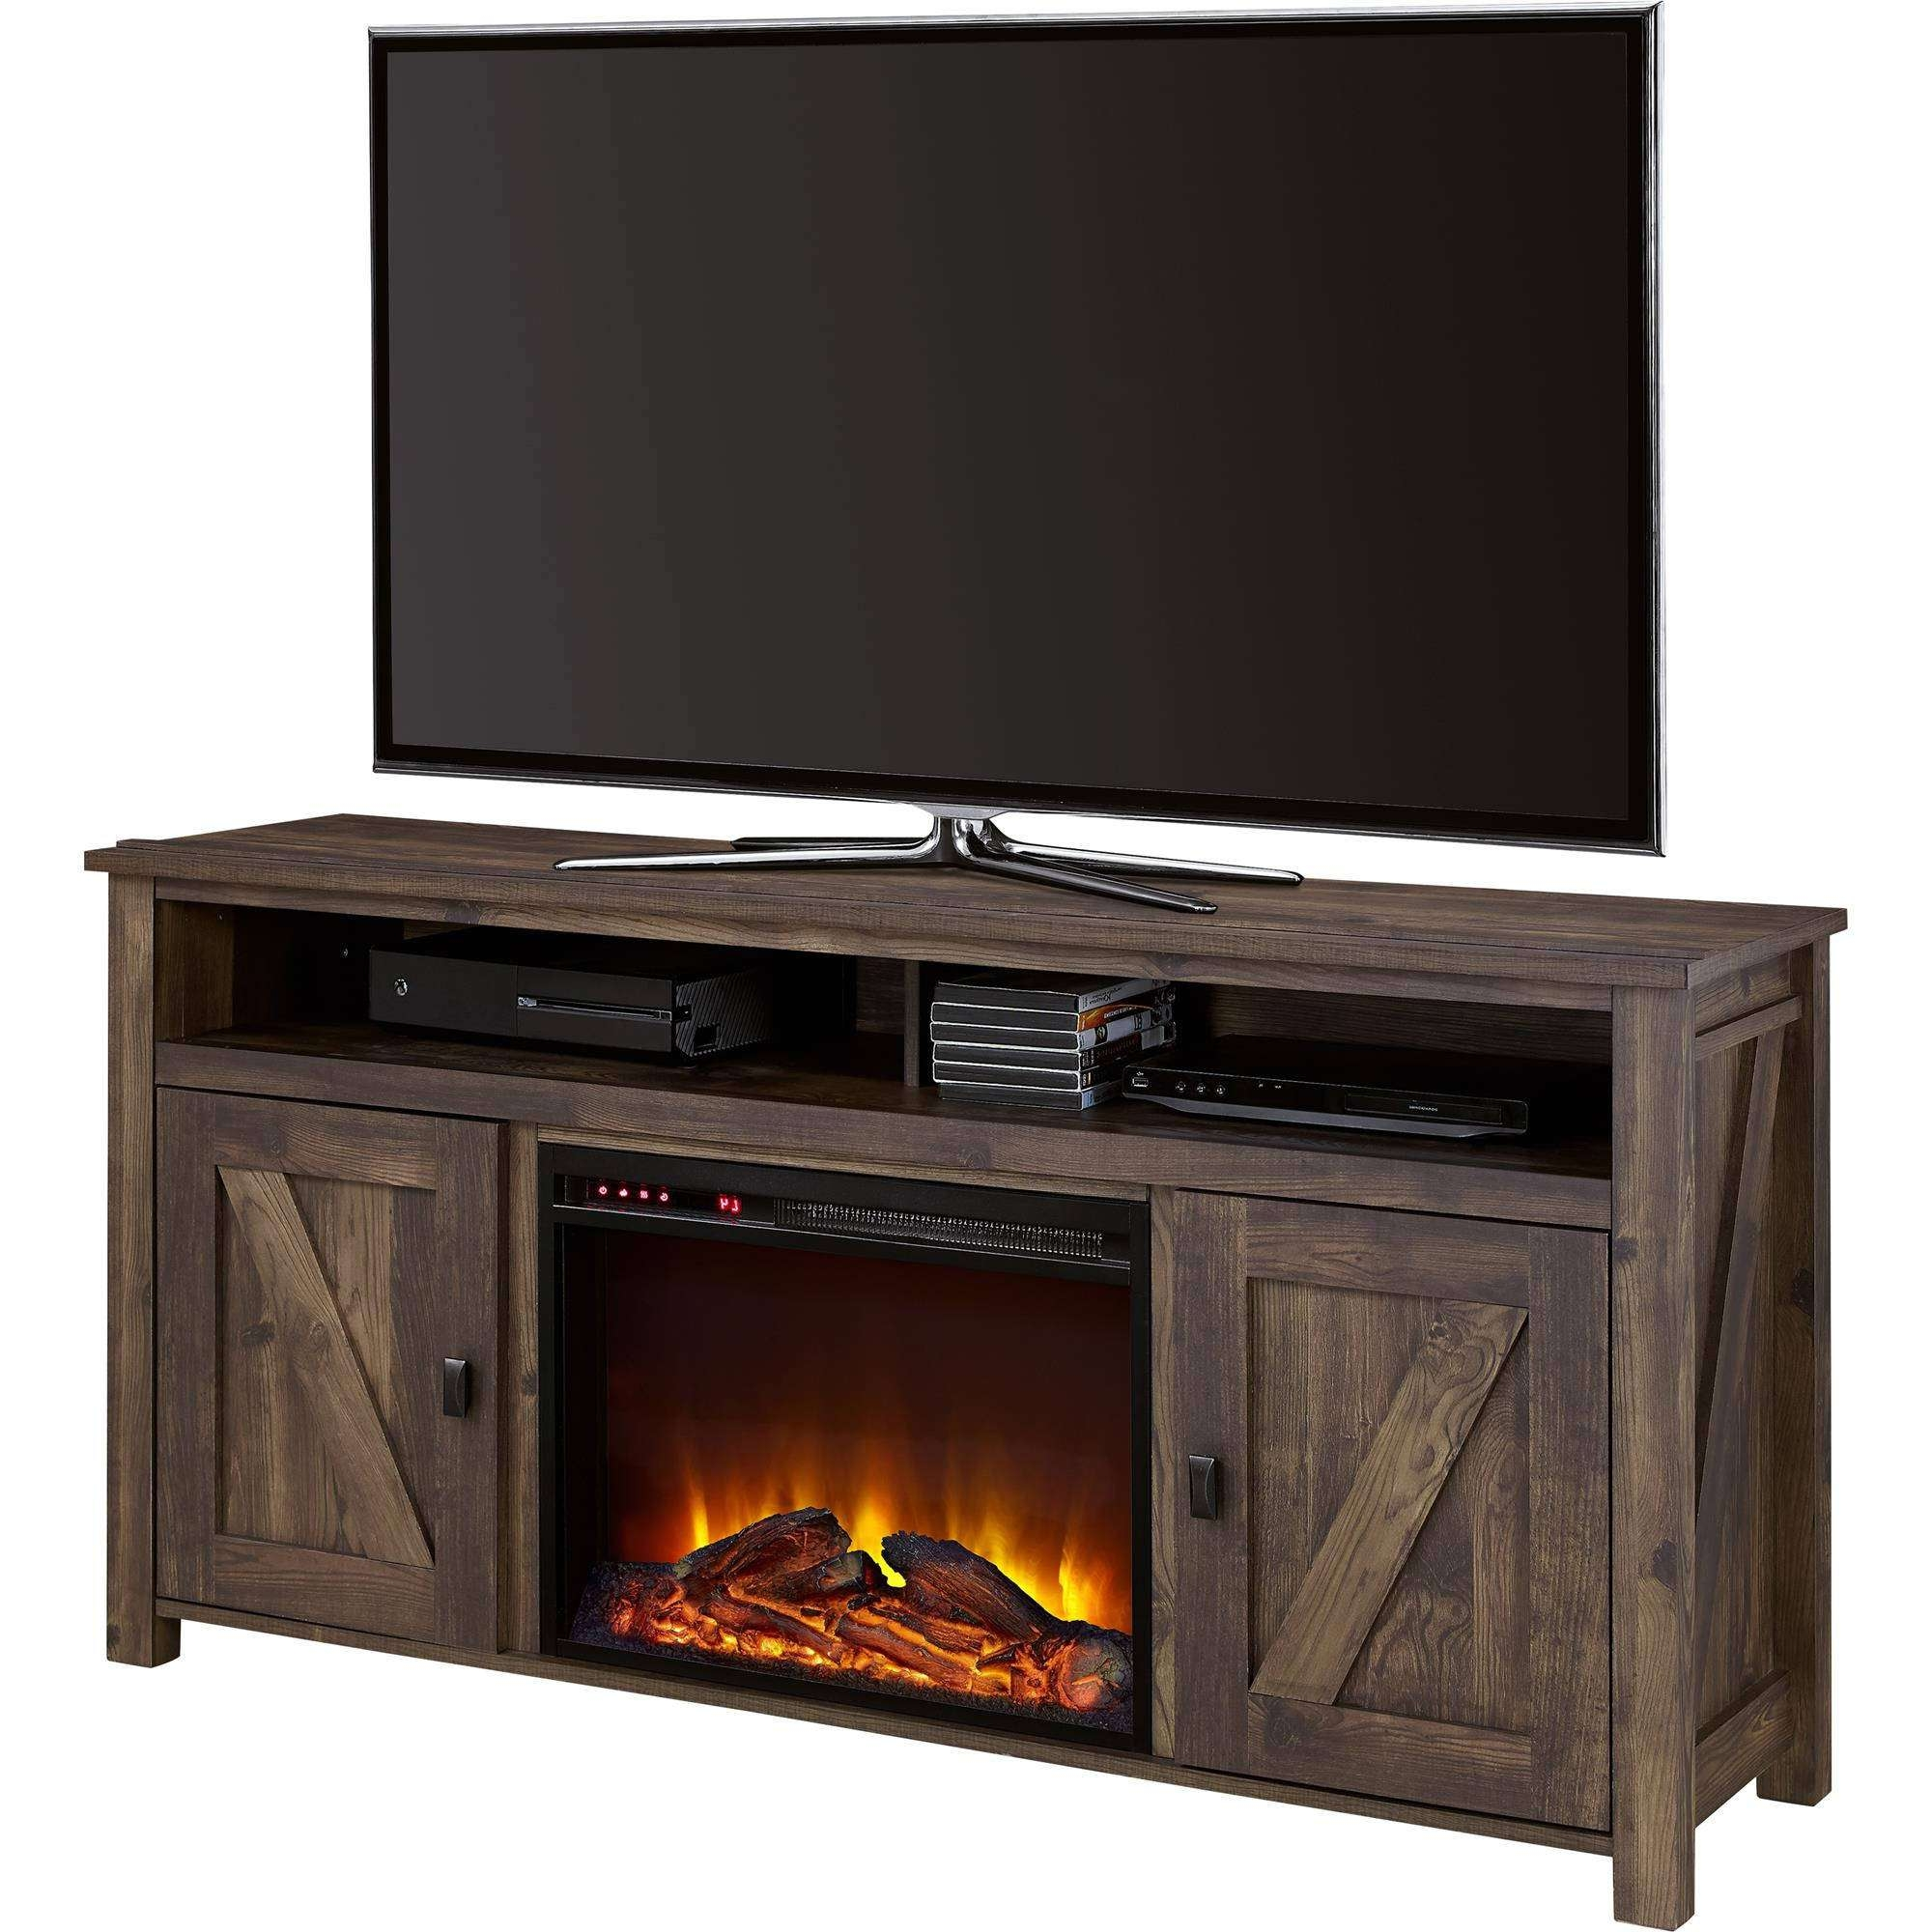 Fireplace Tv Stands – Walmart Within 50 Inch Fireplace Tv Stands (View 3 of 15)